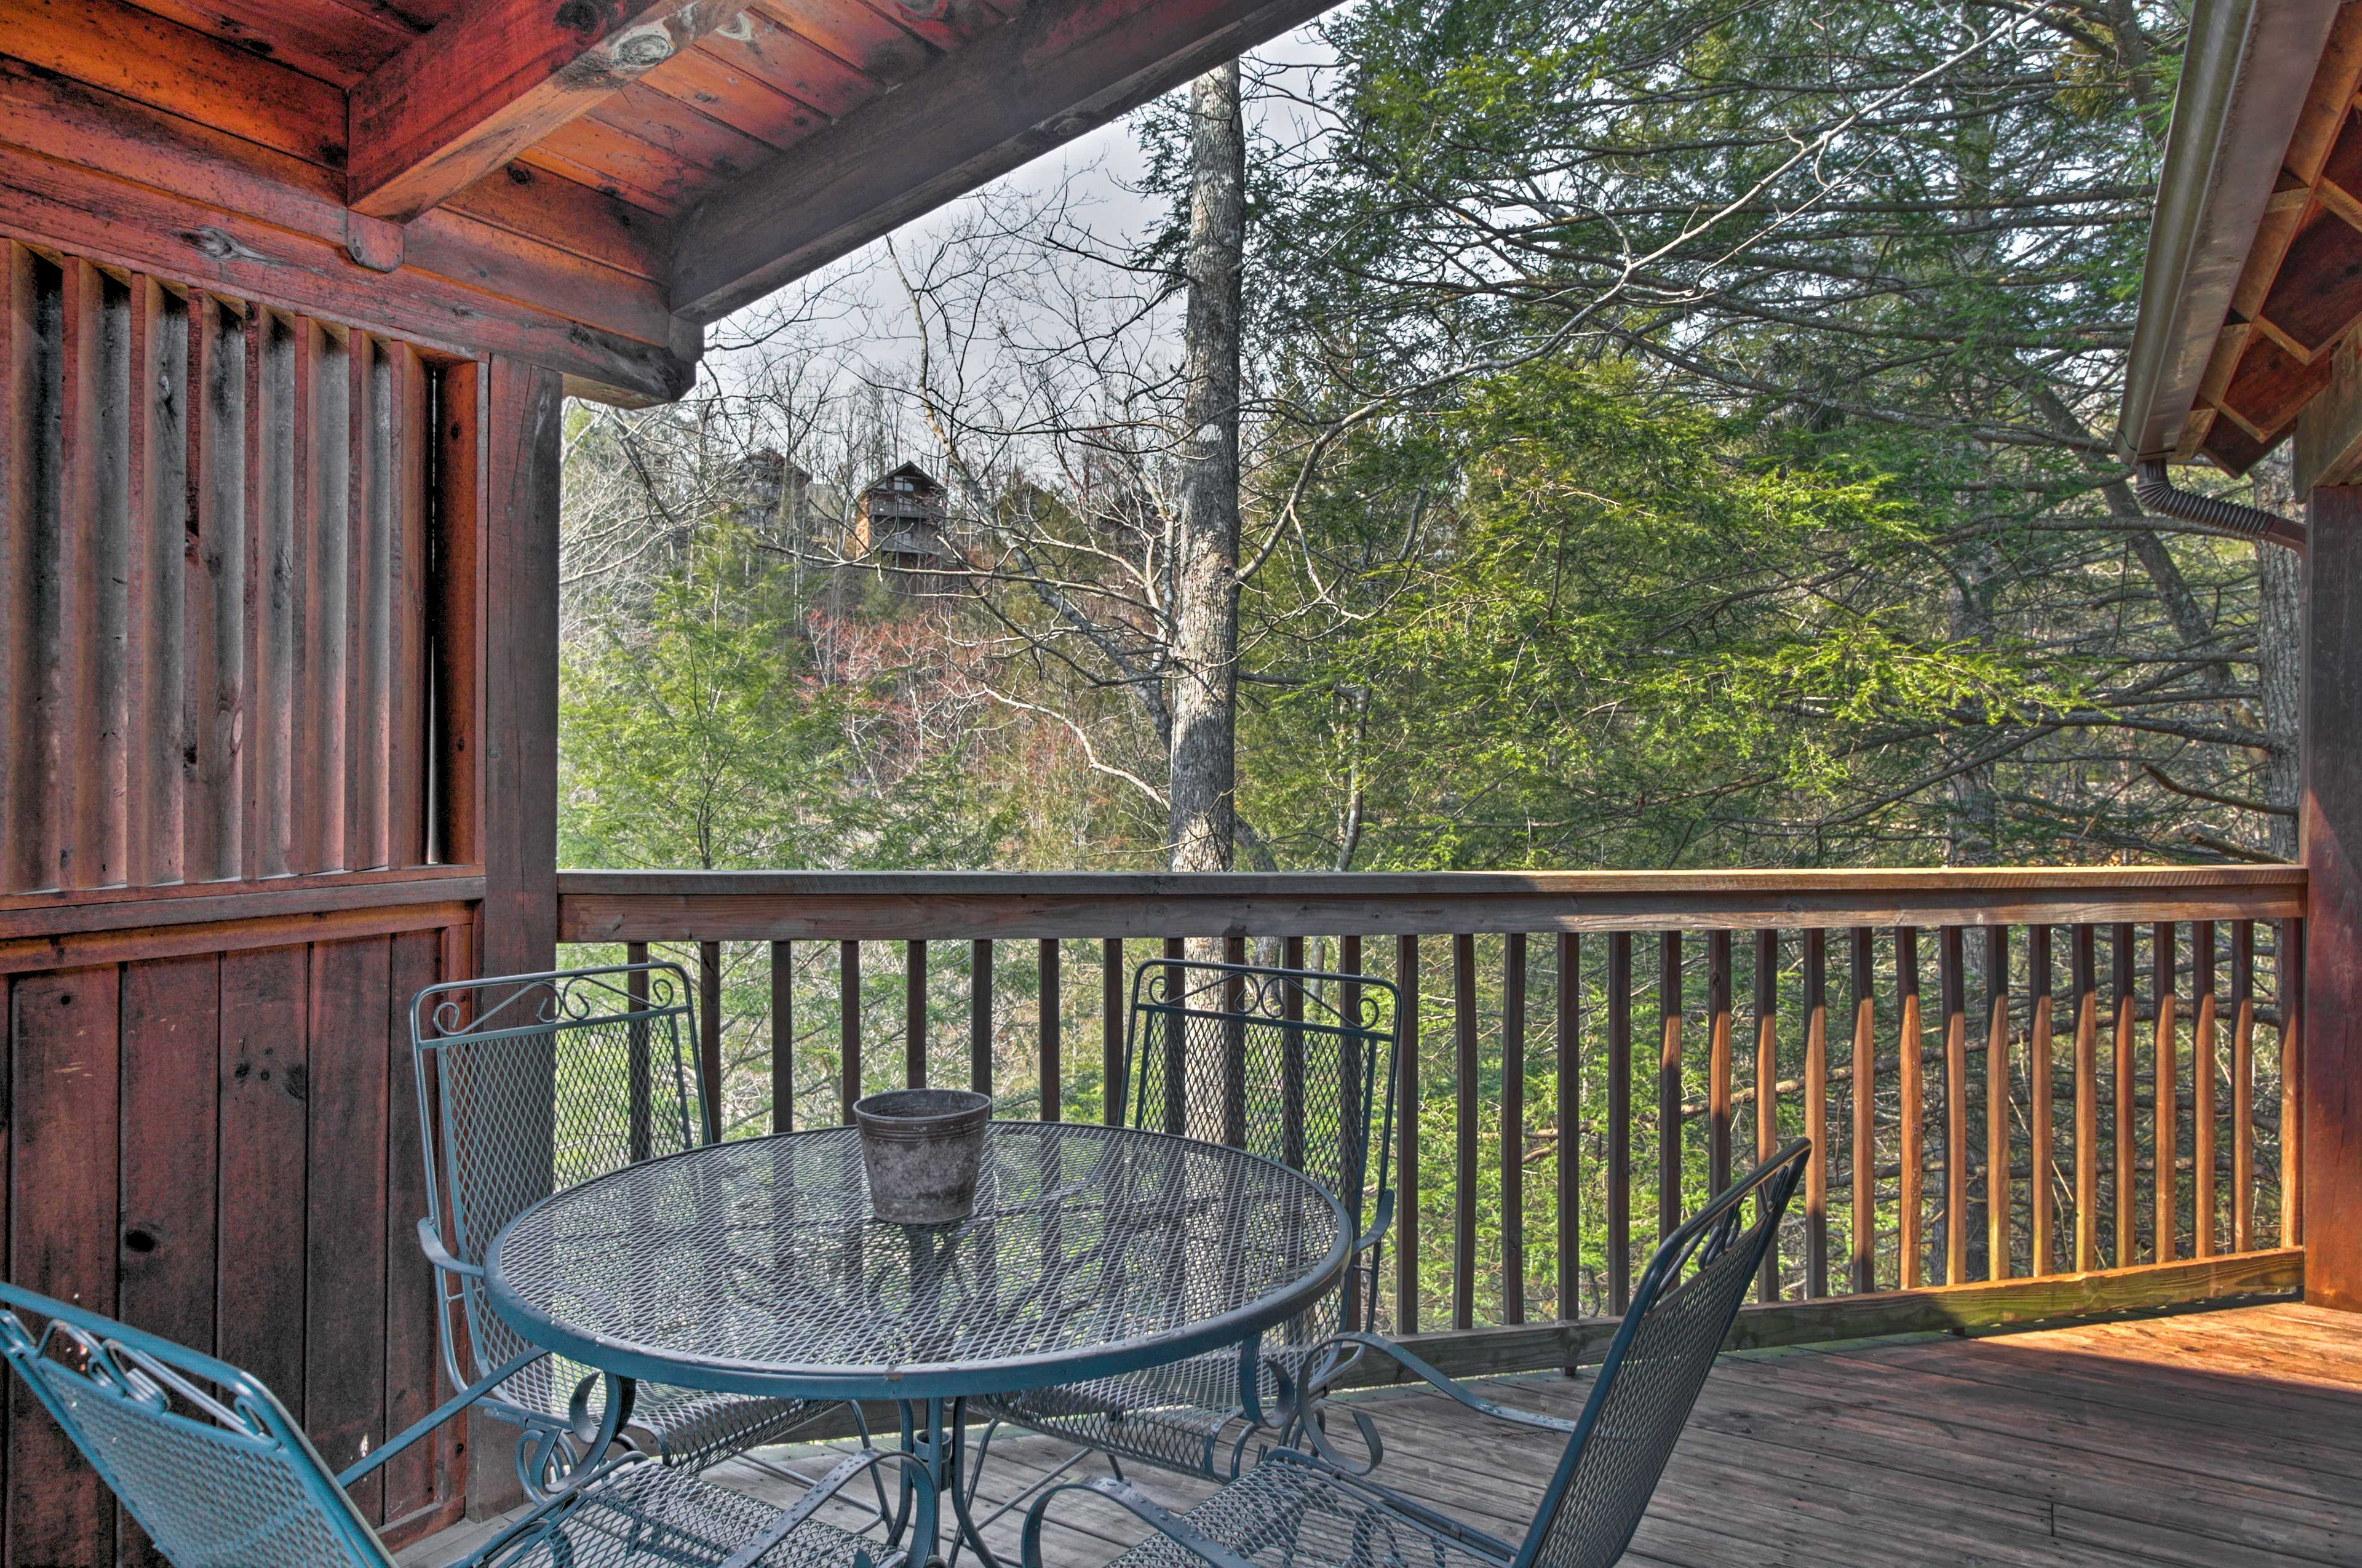 Scenic views can be yours from the covered viewing deck.